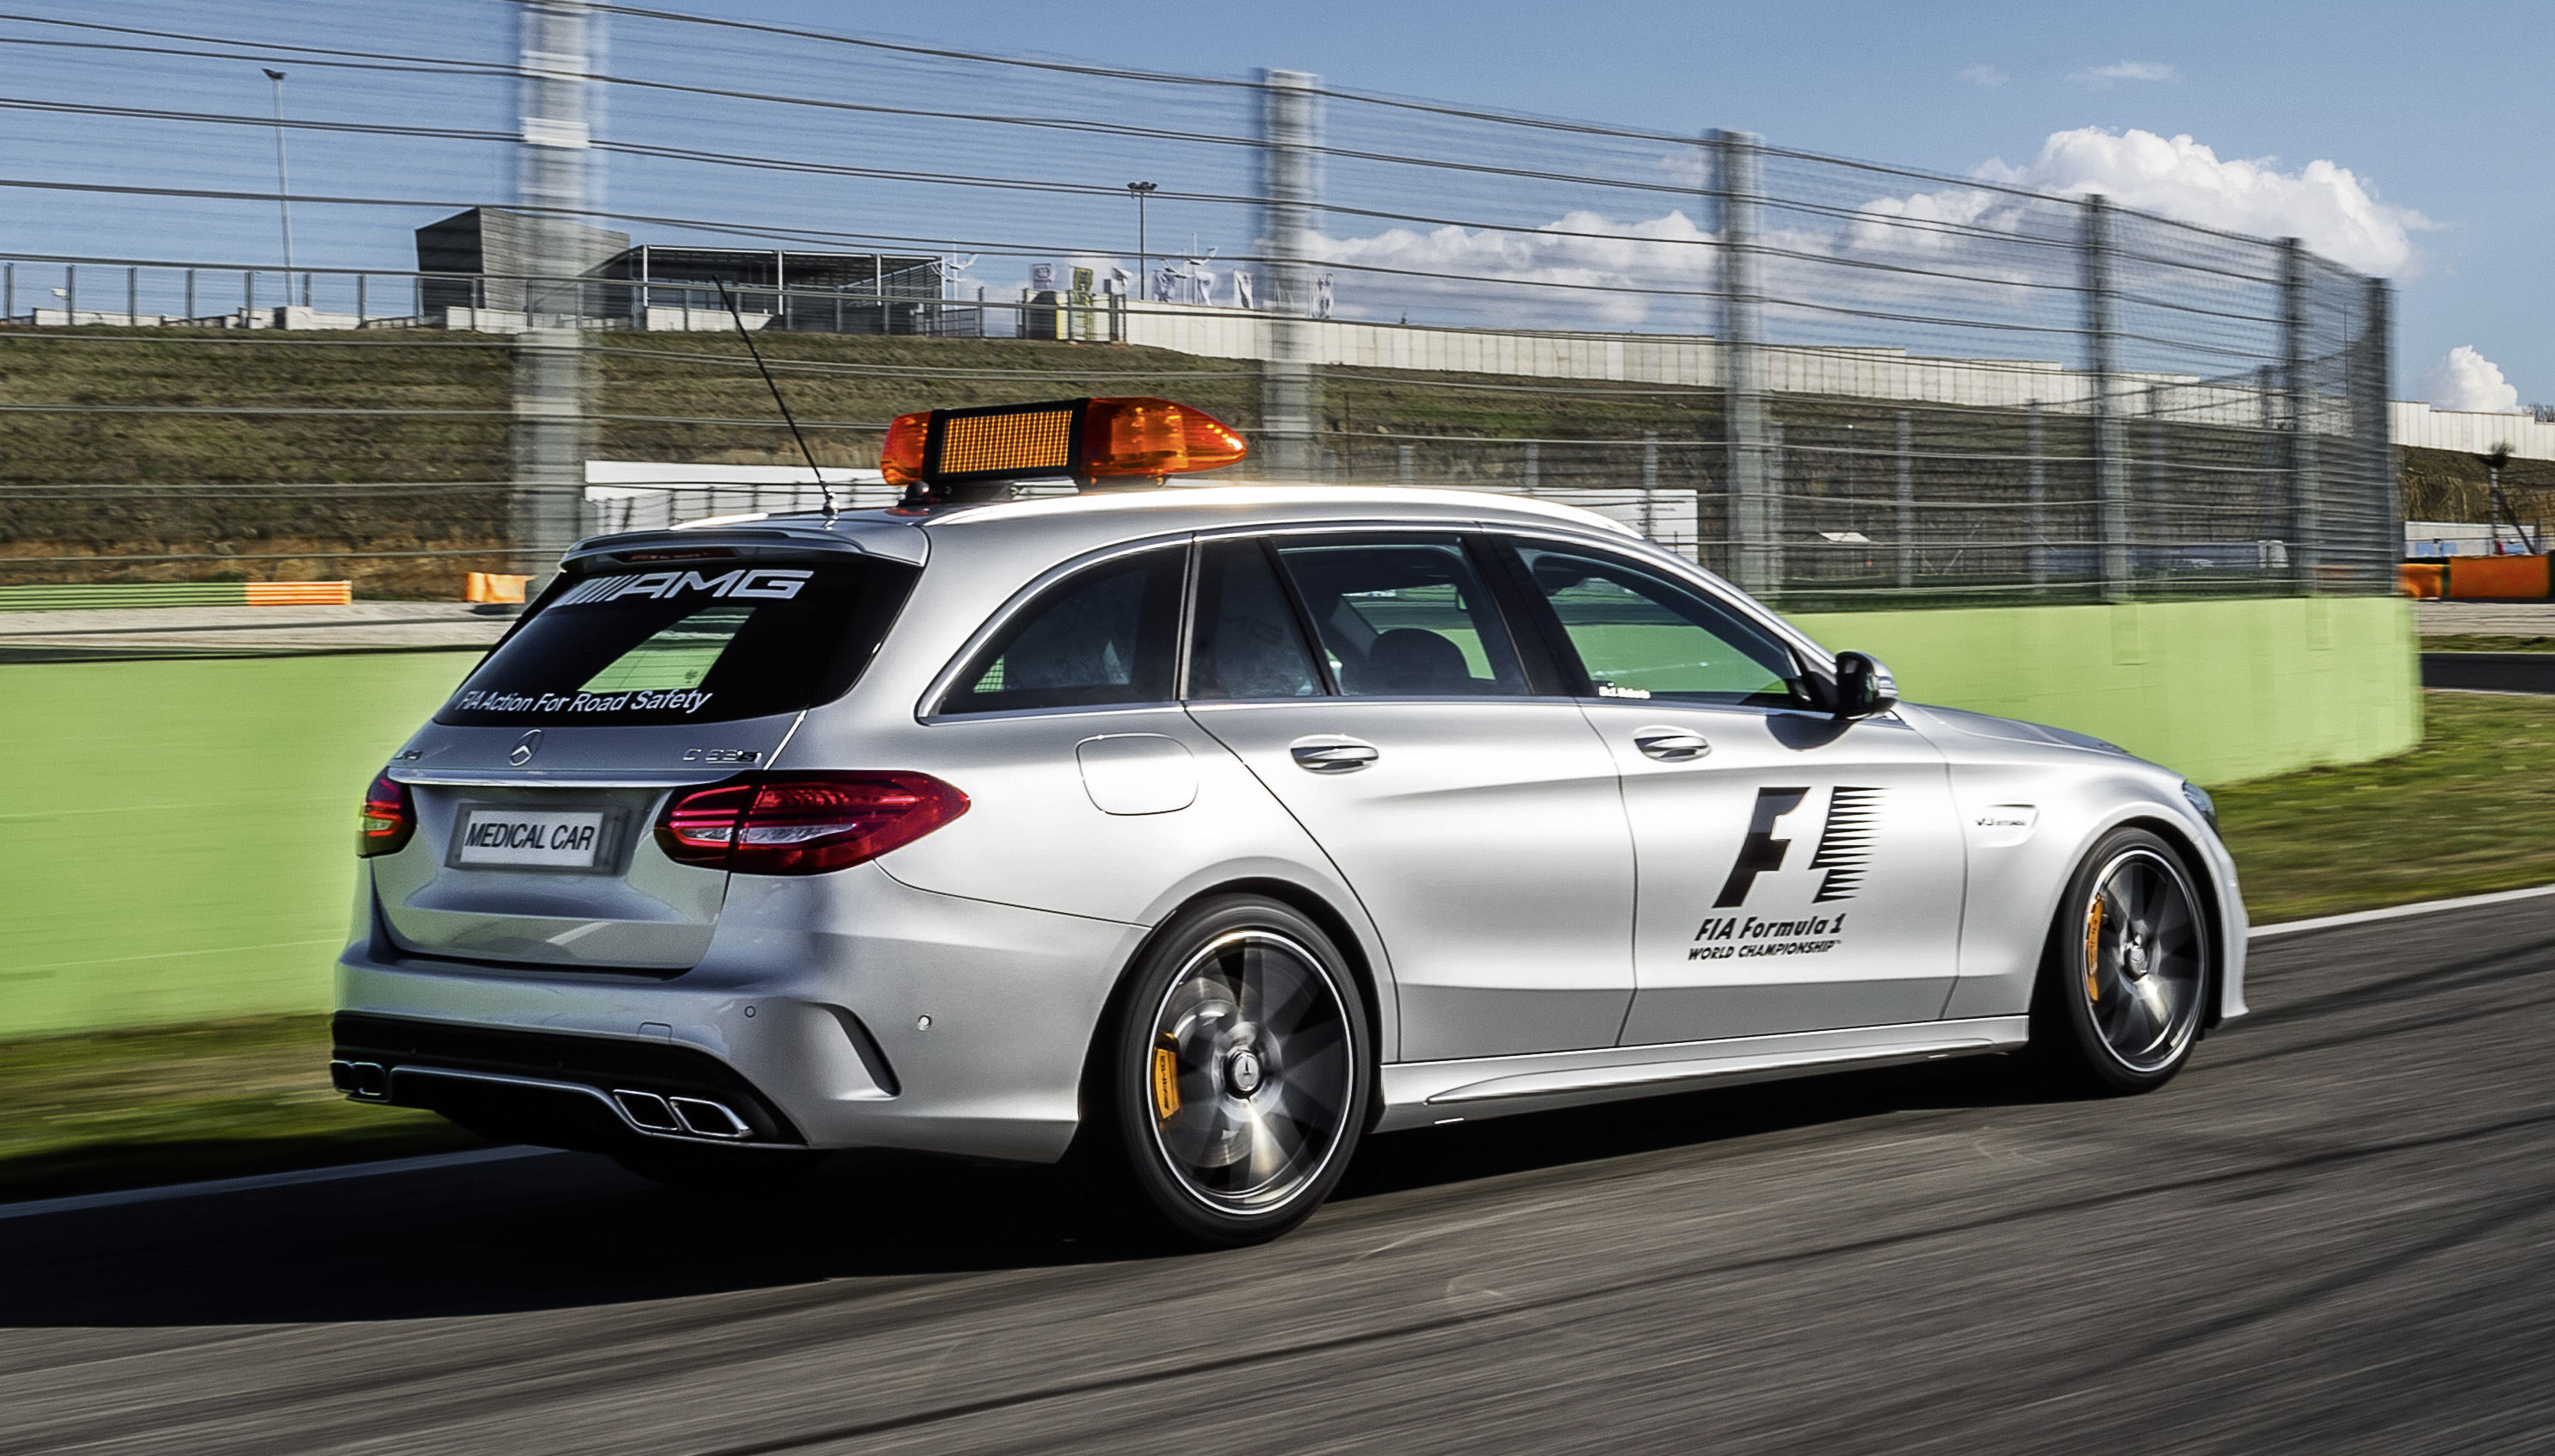 New F1 Safety Car And Medical Car Unveiled For 2015